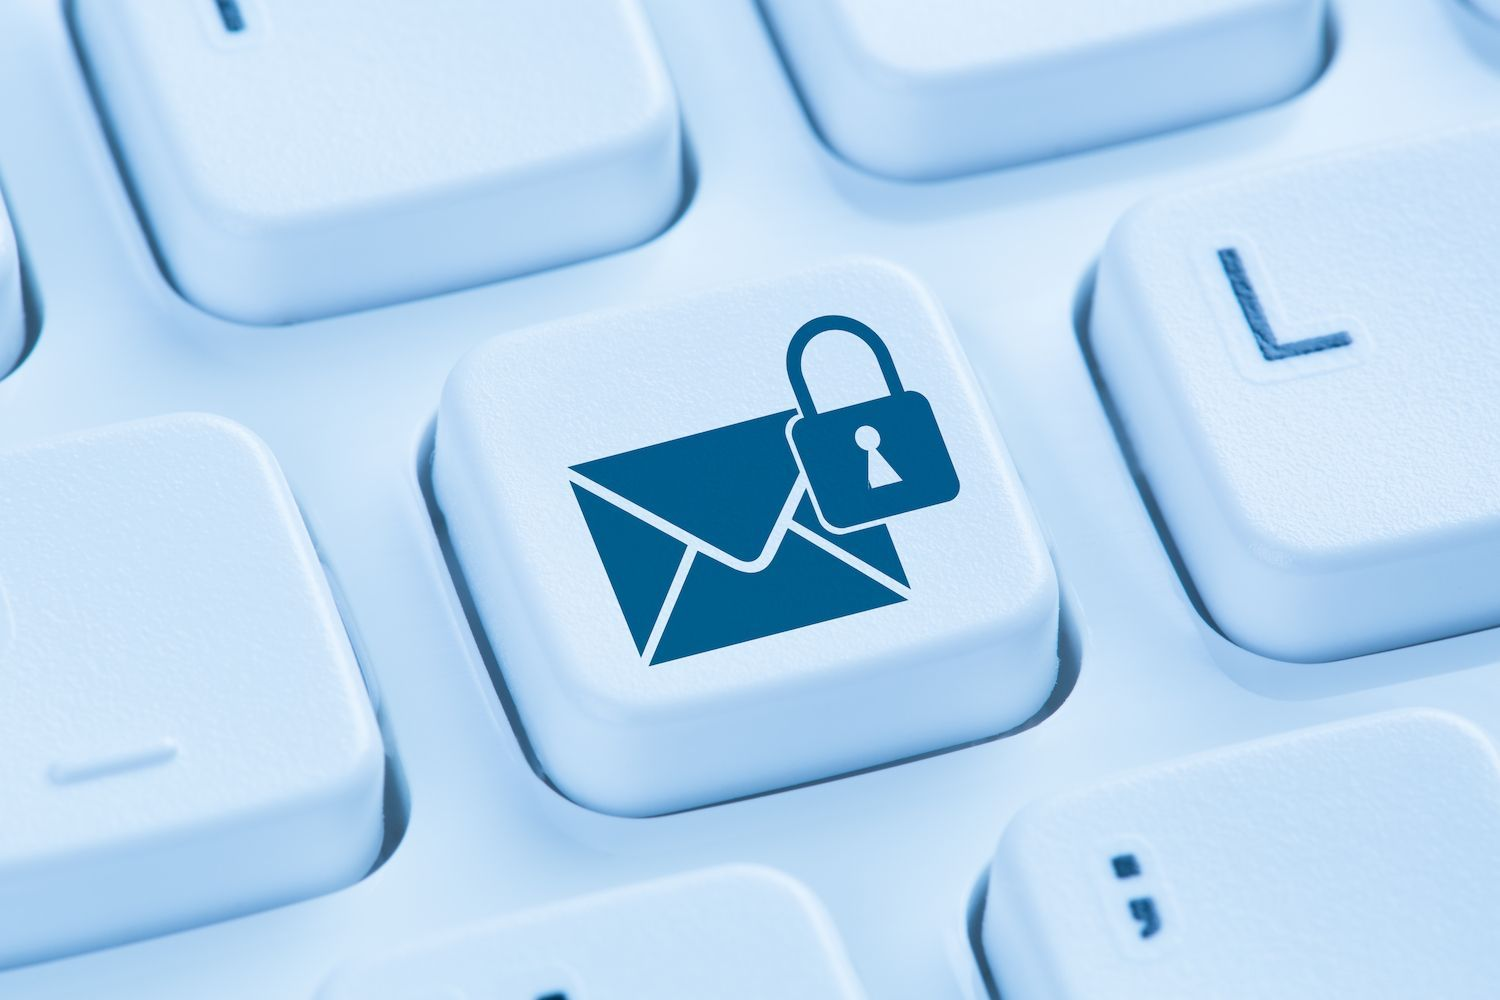 Email Service ProtonMail Adds Bitcoin Payment Option - CoinDesk